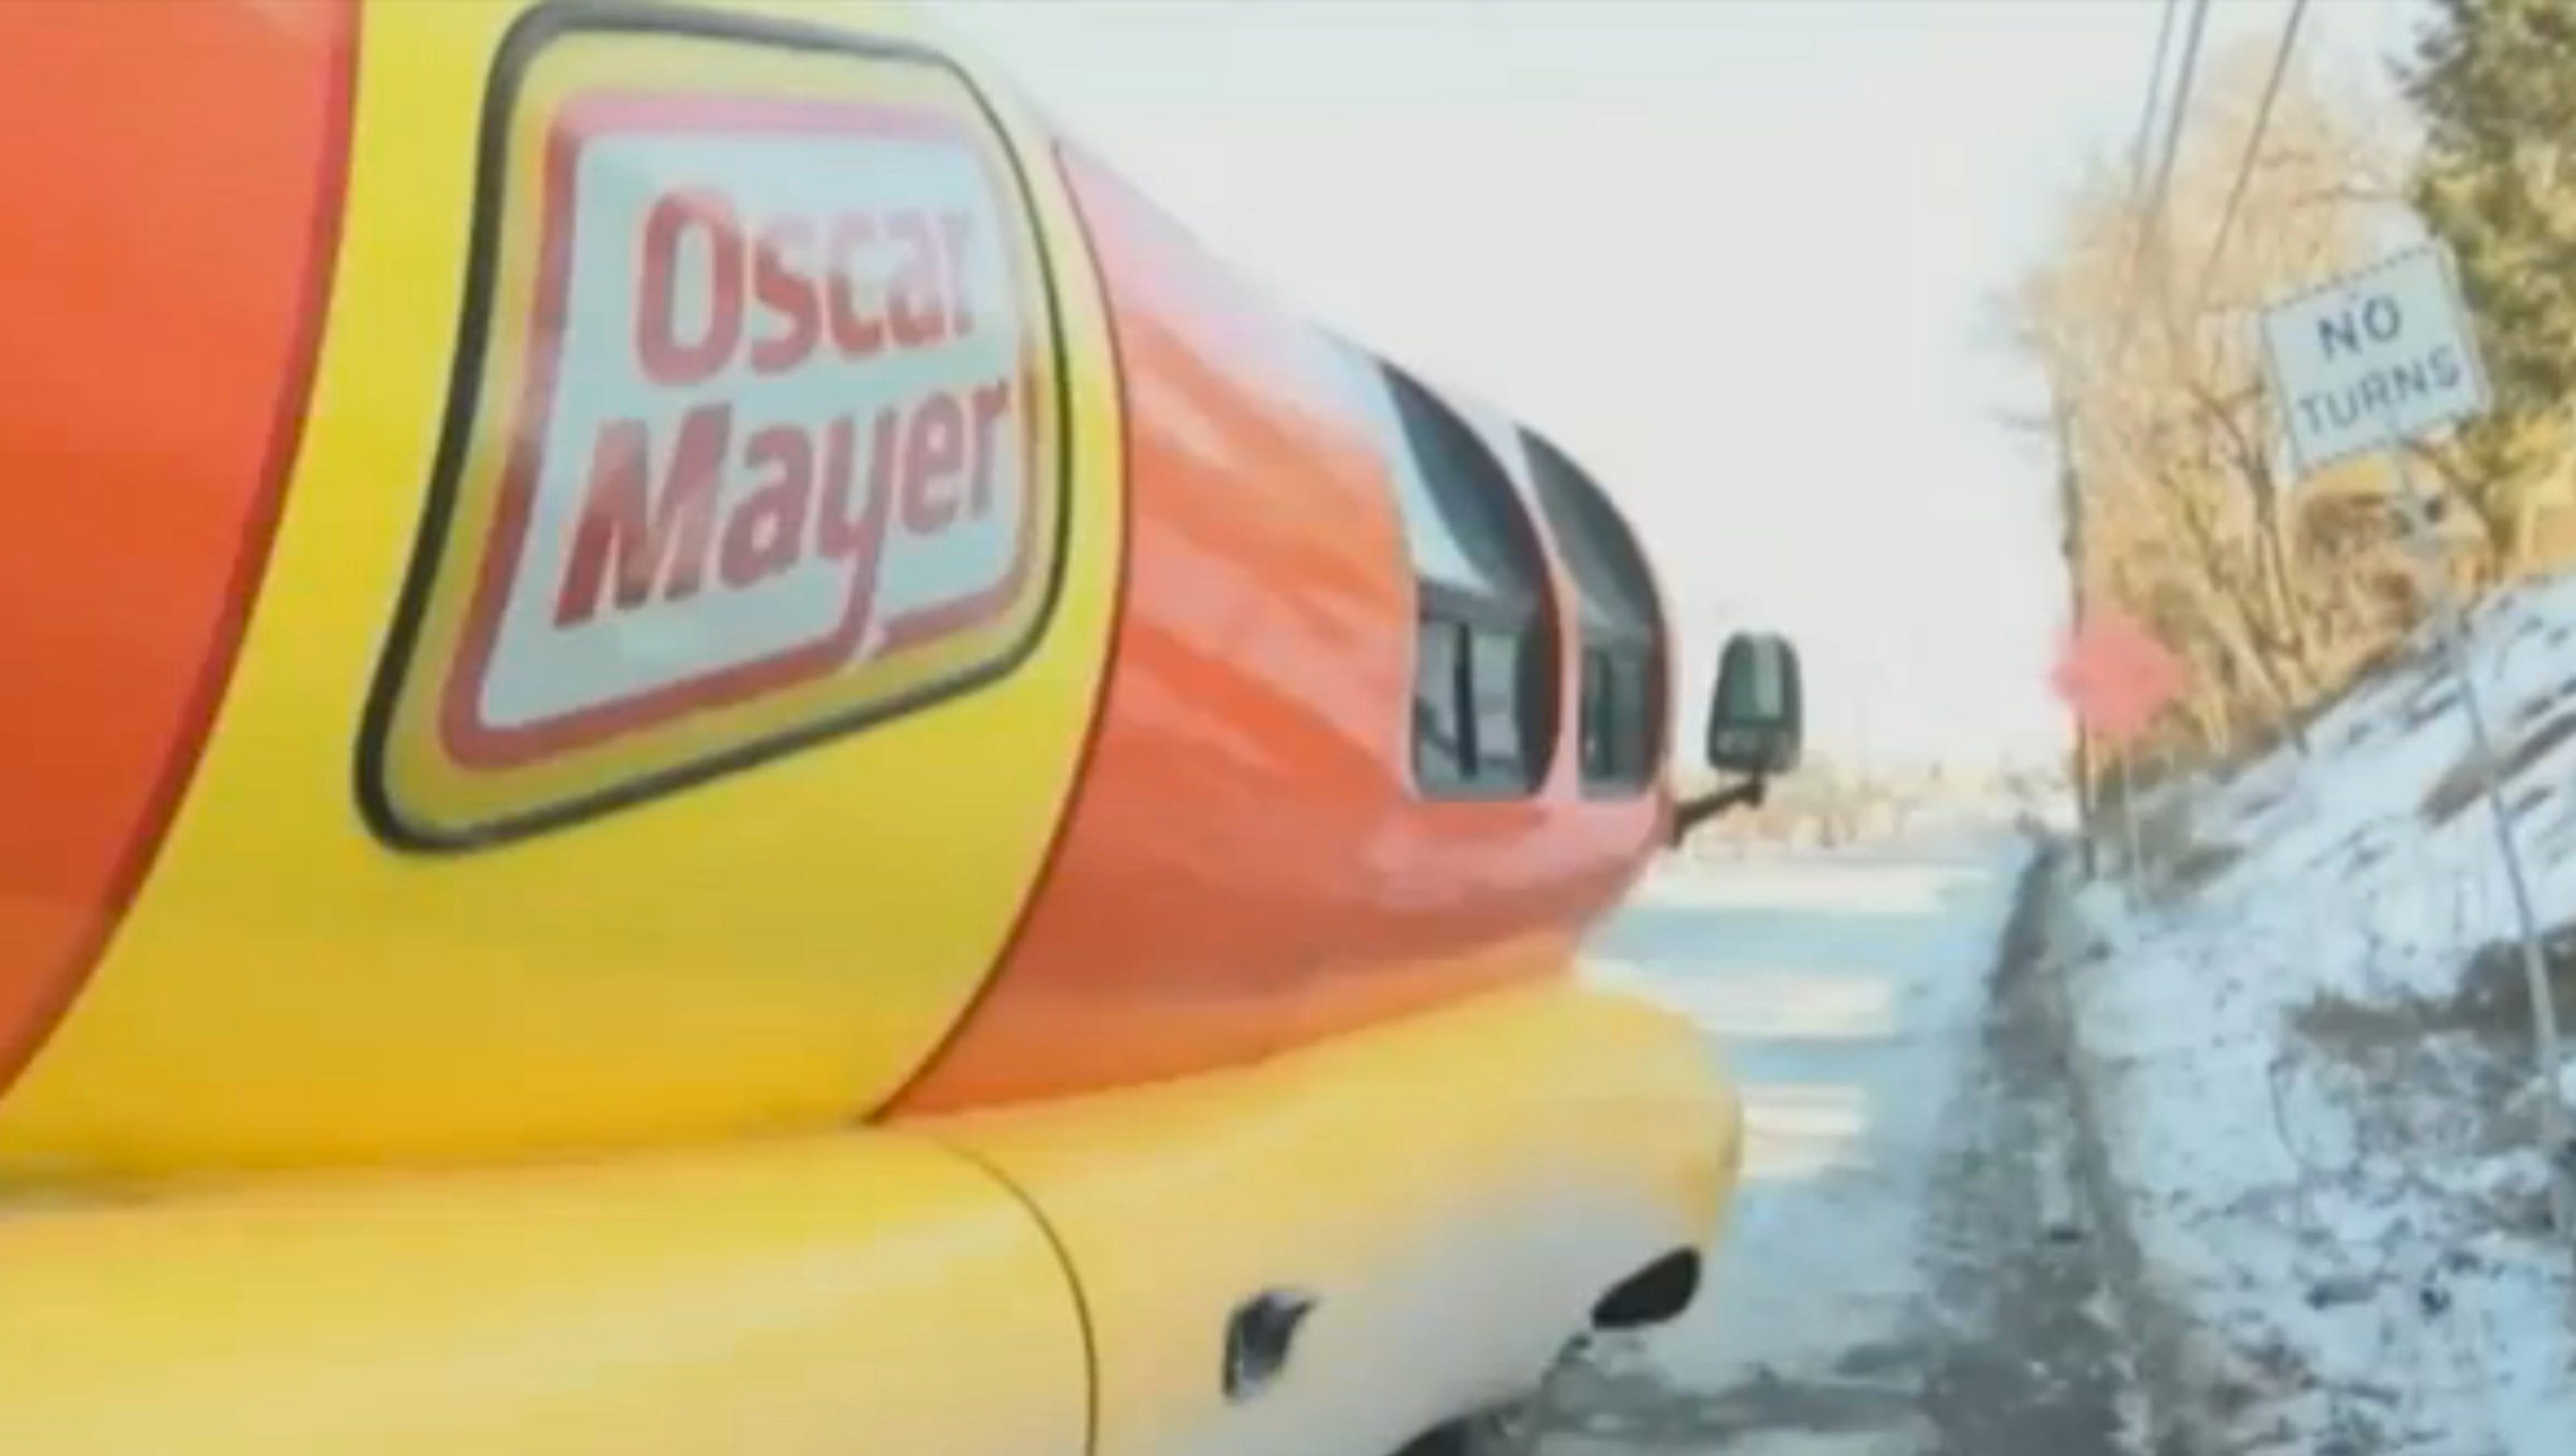 Auto Biografia moreover Wienermobile besides Oscar Mayer Wienermobile together with Baconbarter in addition Old Photos Of Naked Justin Bieber. on oscar meyer weiner